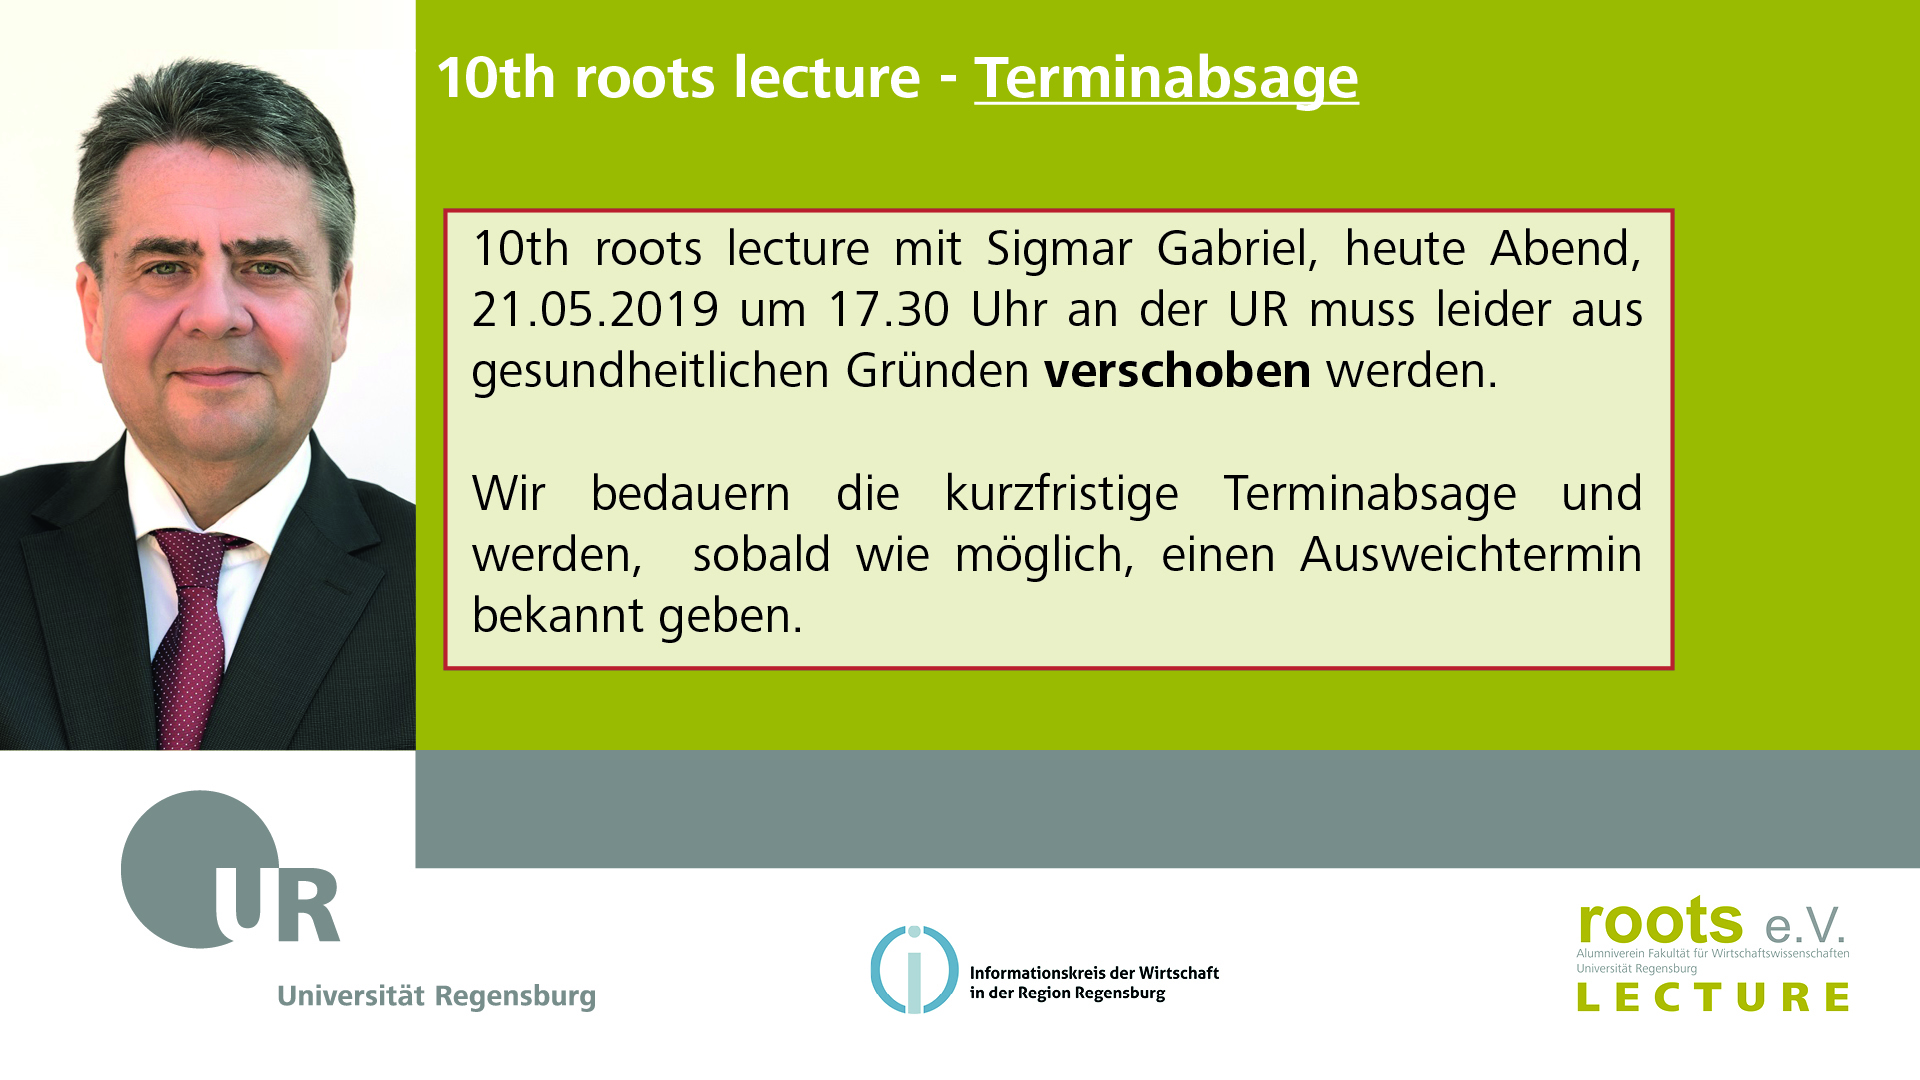 10th roots lecture - Terminabsage